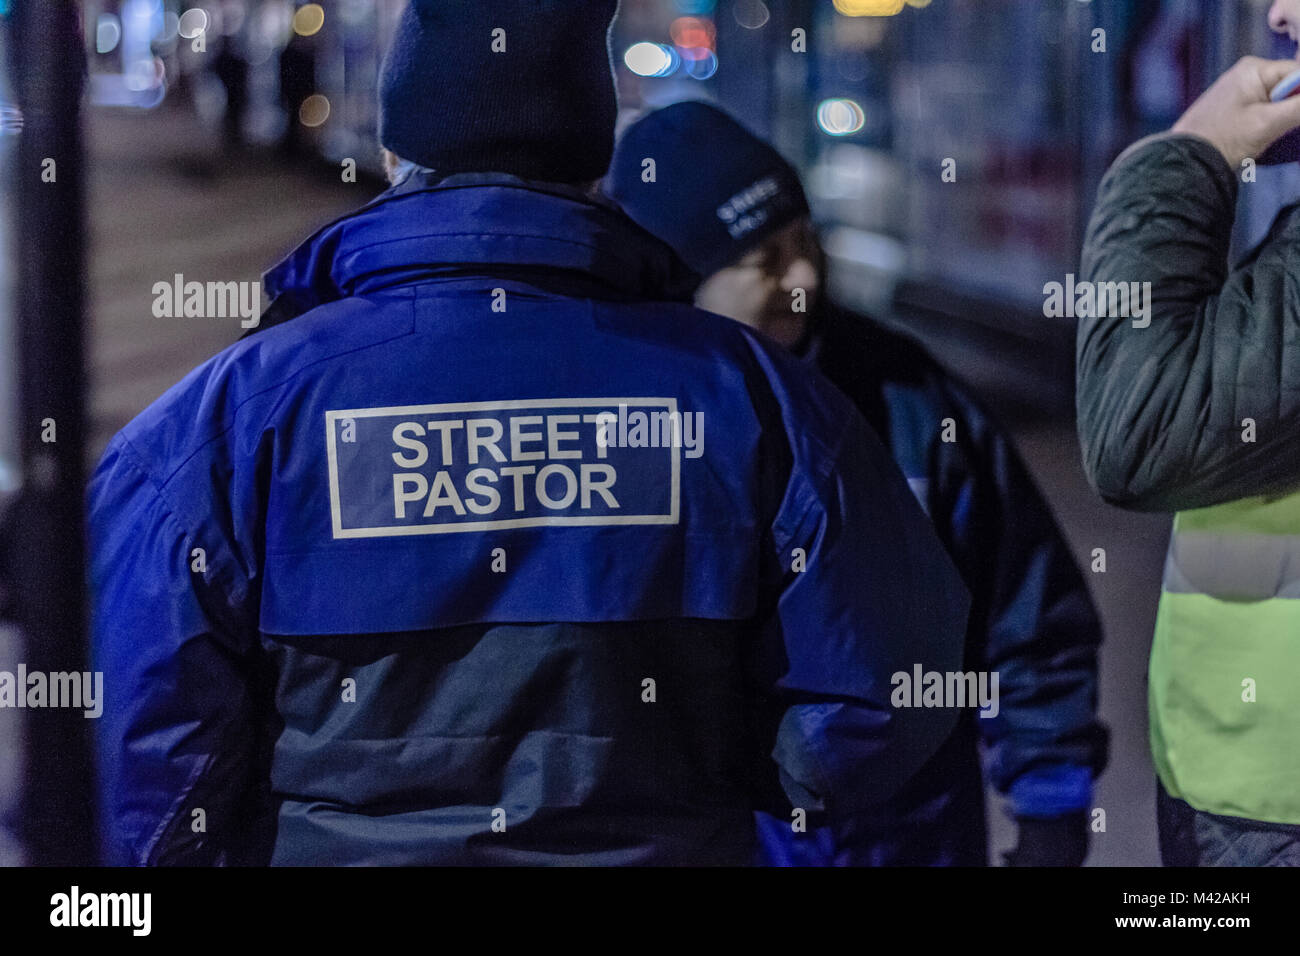 Volunteers for Christian community-focussed  charity Street Pastors, at night in Torquay, Torbay, Devon. 2018. - Stock Image